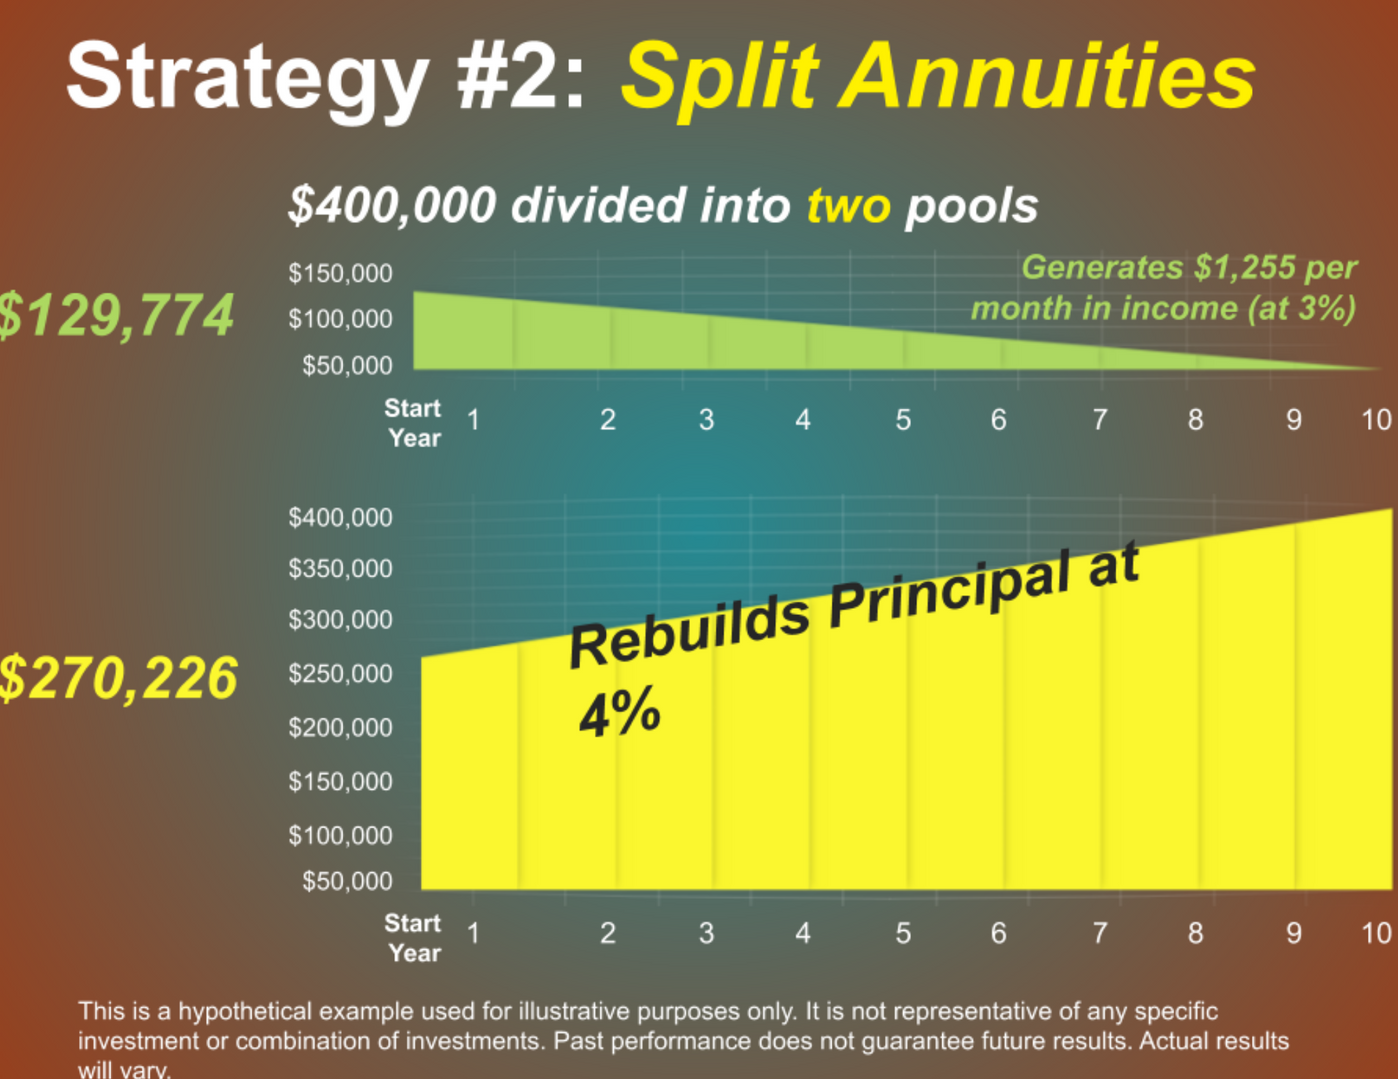 Another investment strategy, layers annuities in creative and potentially effective ways. One approach uses two different annuity contracts. one to generate income. and one to rebuild principal.   Under this approach, a retiree divides $400,000 between an immediate fixed annuity, and a single-premium deferred annuity.   Assuming a hypothetical 3% return on the immediate annuity. a hypothetical 4% return on the deferred annuity. and a 10-year contract. the immediate annuity would generate a hypothetical $1,253 per month in income.   Over the same 10-year period, the deferred annuity would grow to $400,000. — effectively replacing the principal. A split annuity strategy can help you generate current income, while pursuing a future income stream. Remember, the interest portion of the immediate fixed annuity is subject to taxes. You also will have to pay taxes on the growth of the single-premium deferred annuity.   The guarantees of an annuity contract depend on the issuing company's claims-paying ability. Annuities have contract limitations, fees, and charges, including account and administrative fees, underlying investment management fees, mortality and expense fees, and charges for optional benefits.   Most annuities have surrender fees that are usually highest if you take out the money in the initial years of the annuity contract. Withdrawals and income payments are taxed as ordinary income. If a withdrawal is made prior to age 59½, a 10% federal income tax penalty may apply. (unless an exception applies). Annuities are not guaranteed by the F D I C or any other government agency. This is a hypothetical example used for illustrative purposes only. It is not representative of any specific investment or combination of investments. Past performance does not guarantee future results. Actual results will vary.